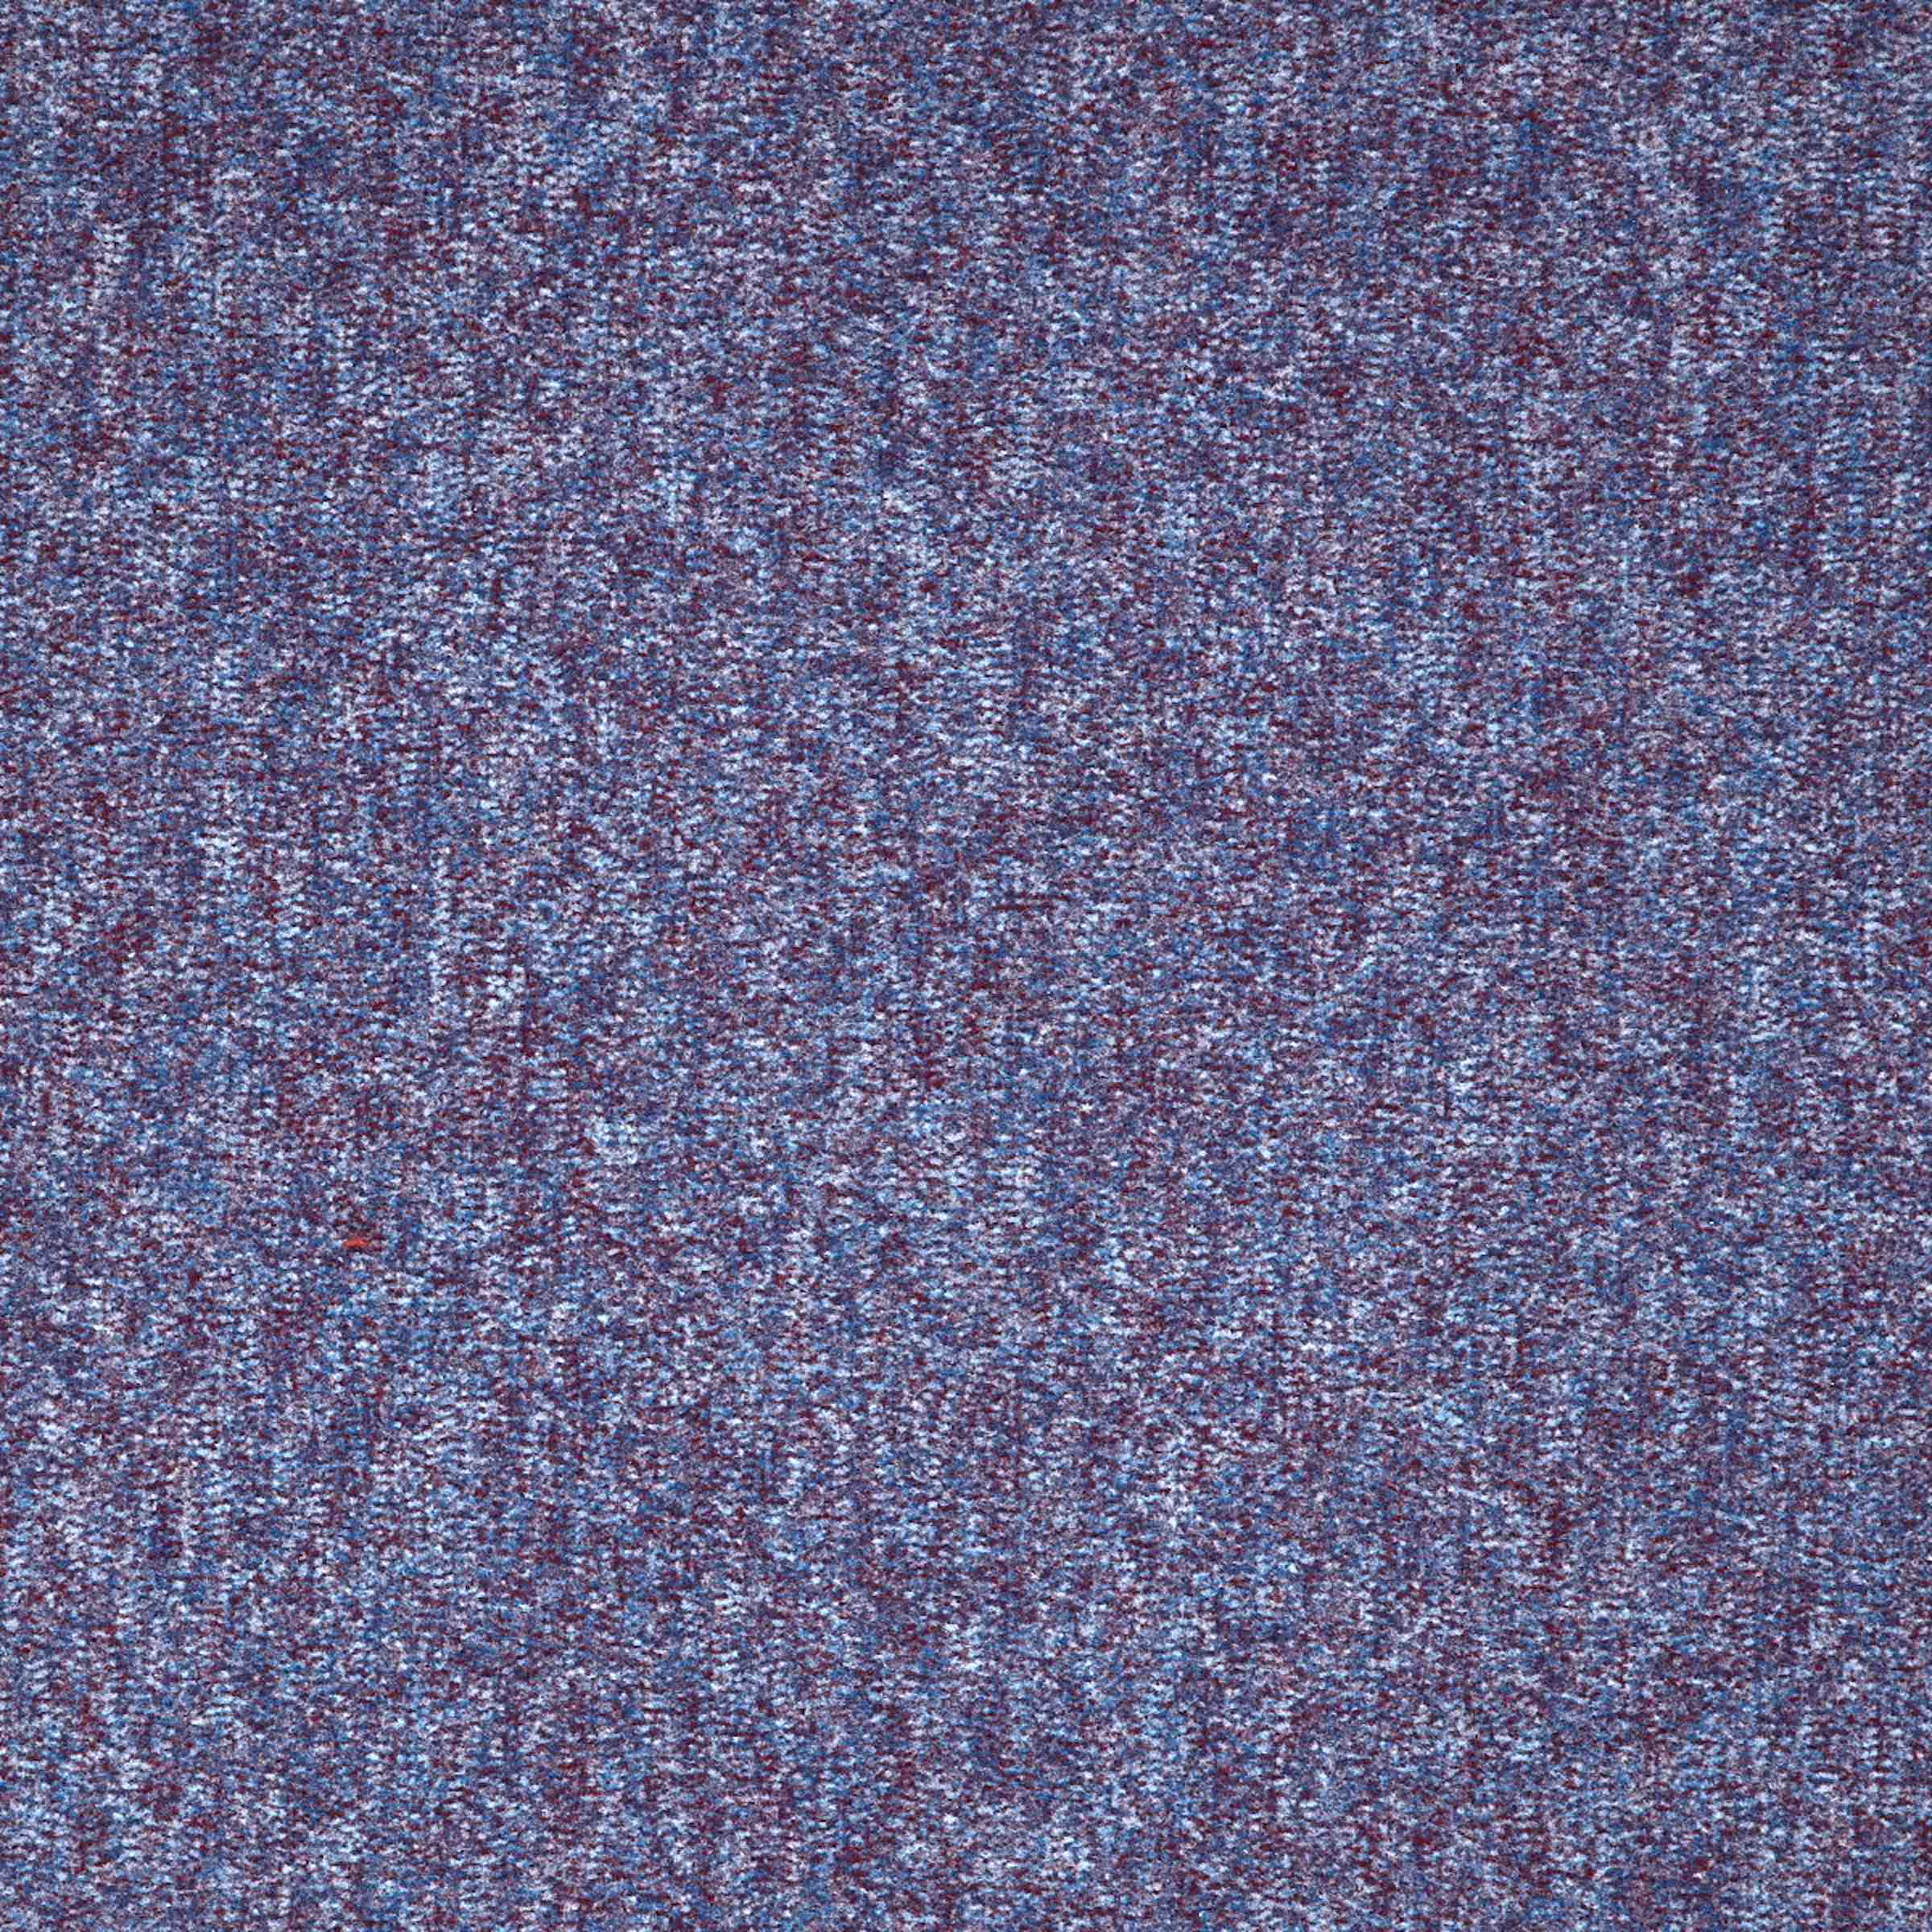 Workspace Cut Pile | Grape Blue, 6155C | Paragon Carpet Tiles | Commercial Carpet Tiles